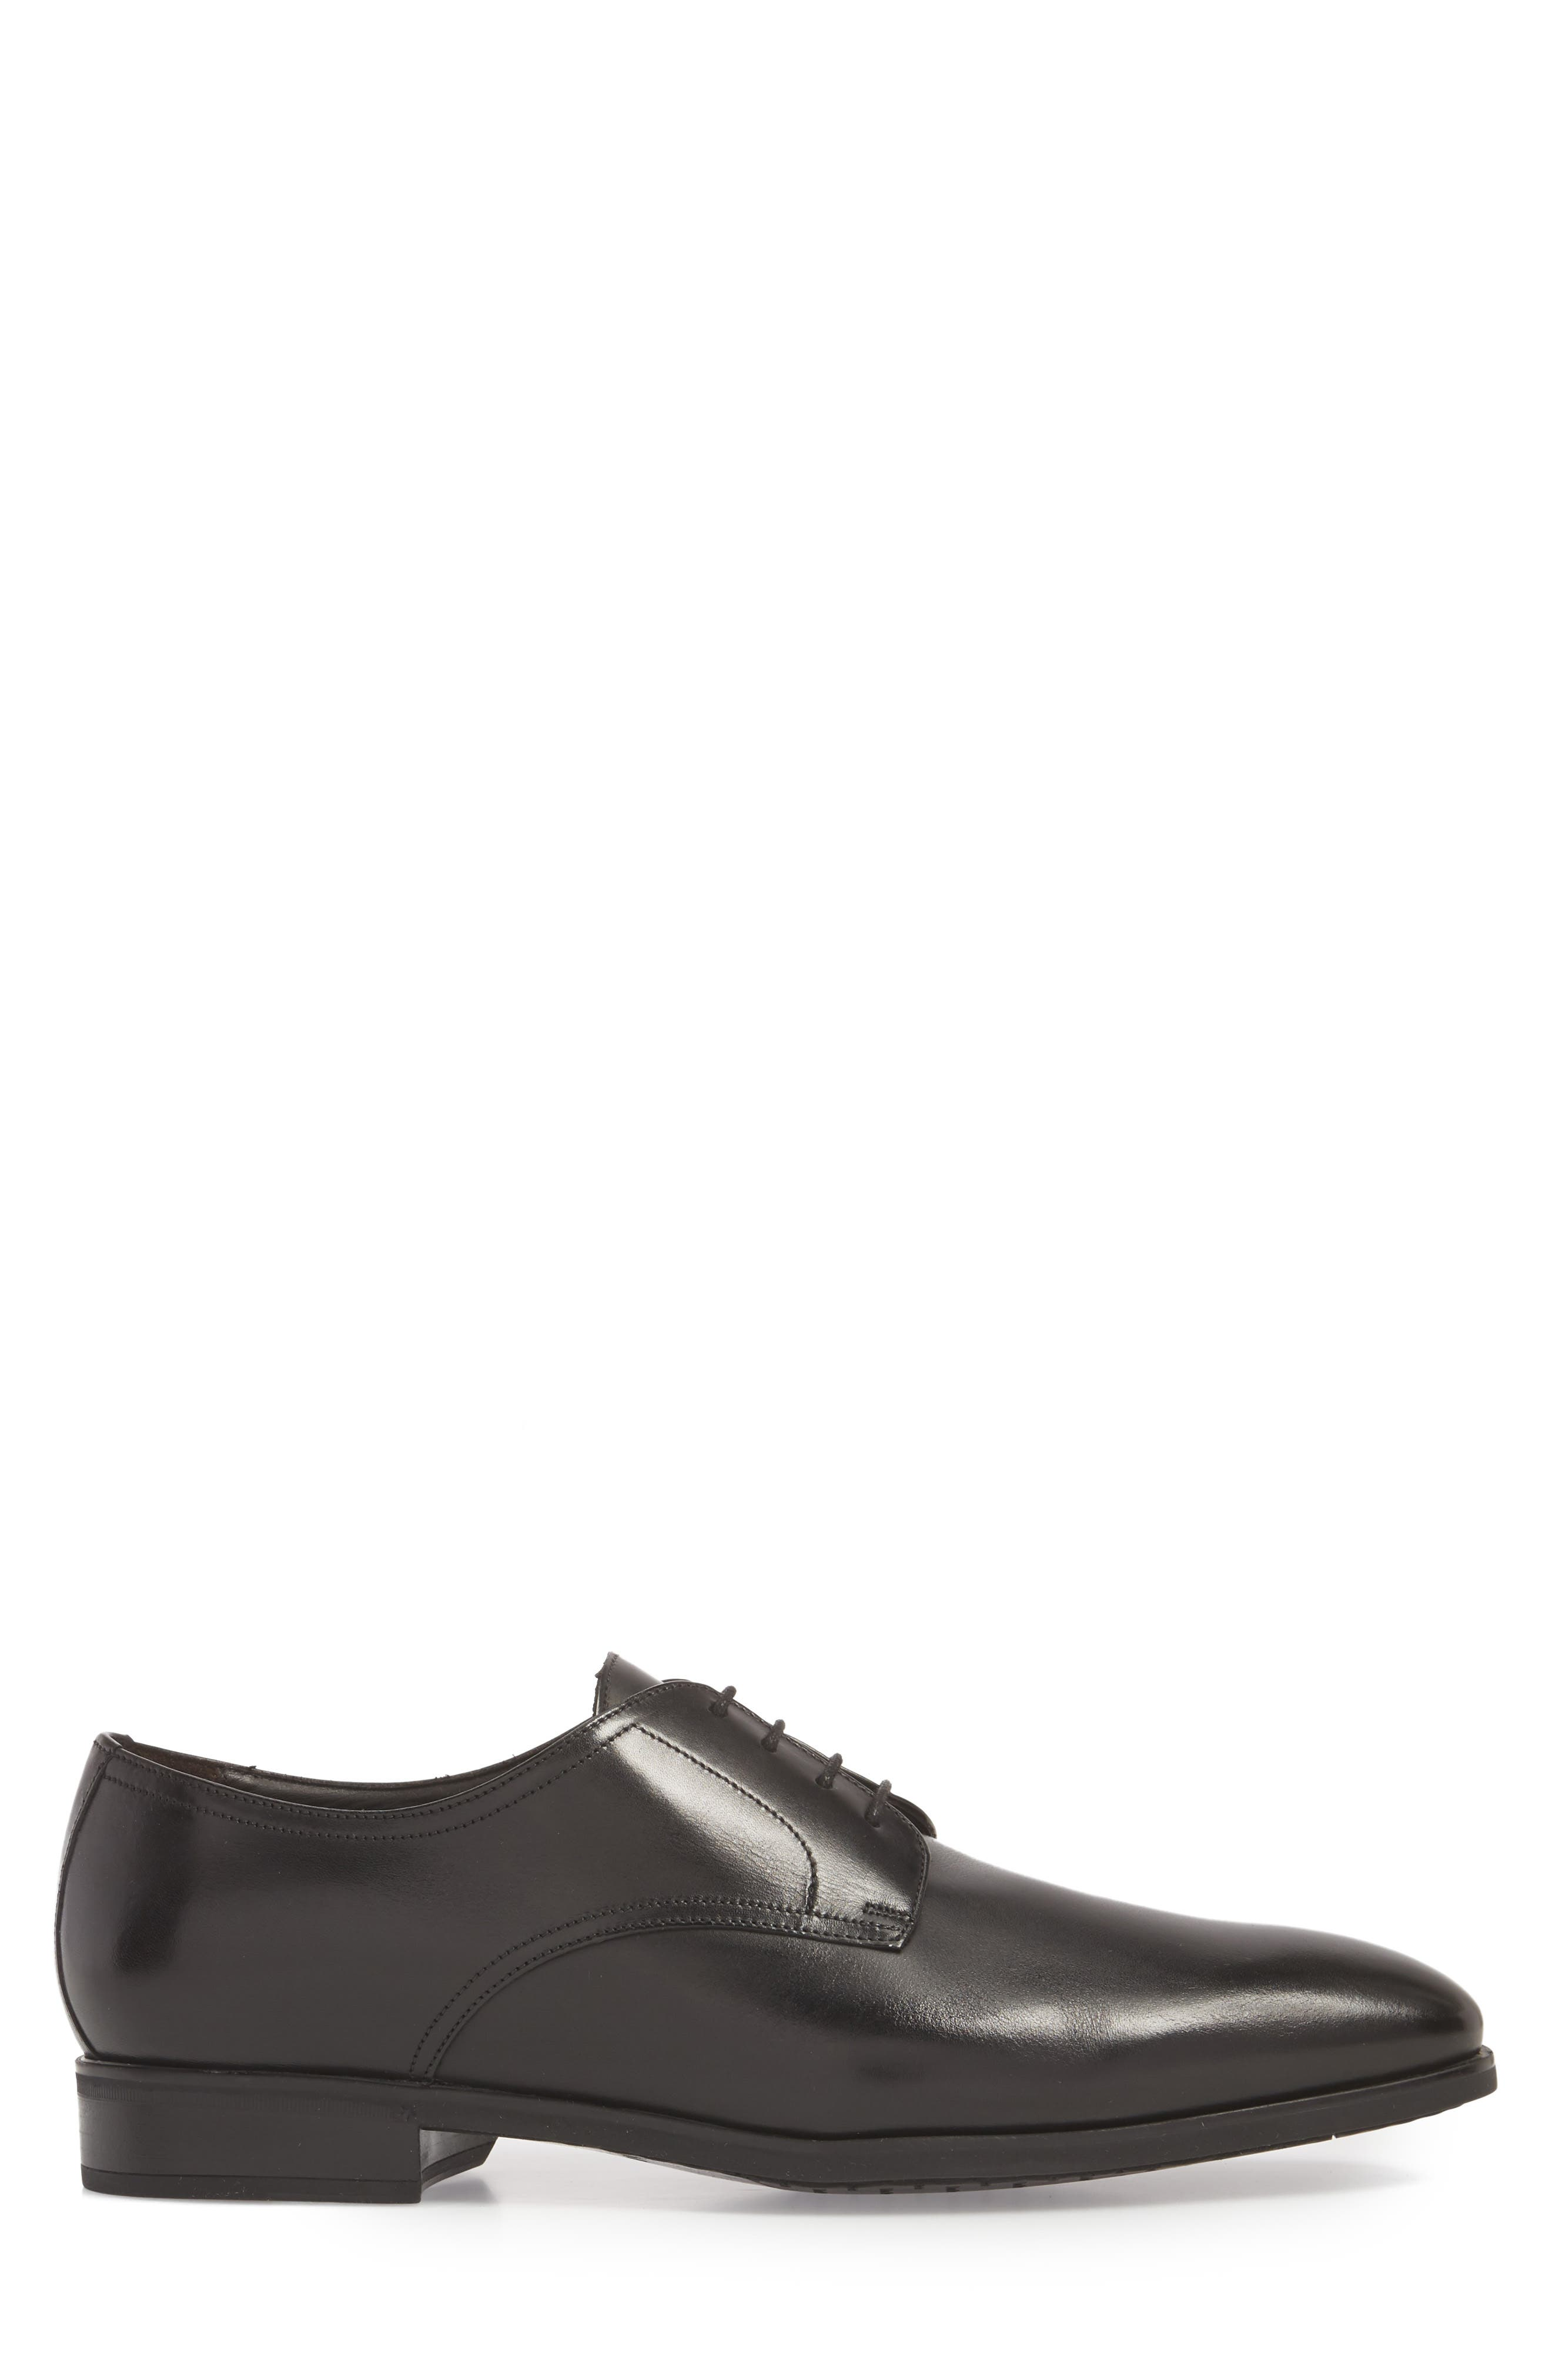 TO BOOT NEW YORK, Dwight Plain Toe Derby, Alternate thumbnail 3, color, BLACK LEATHER